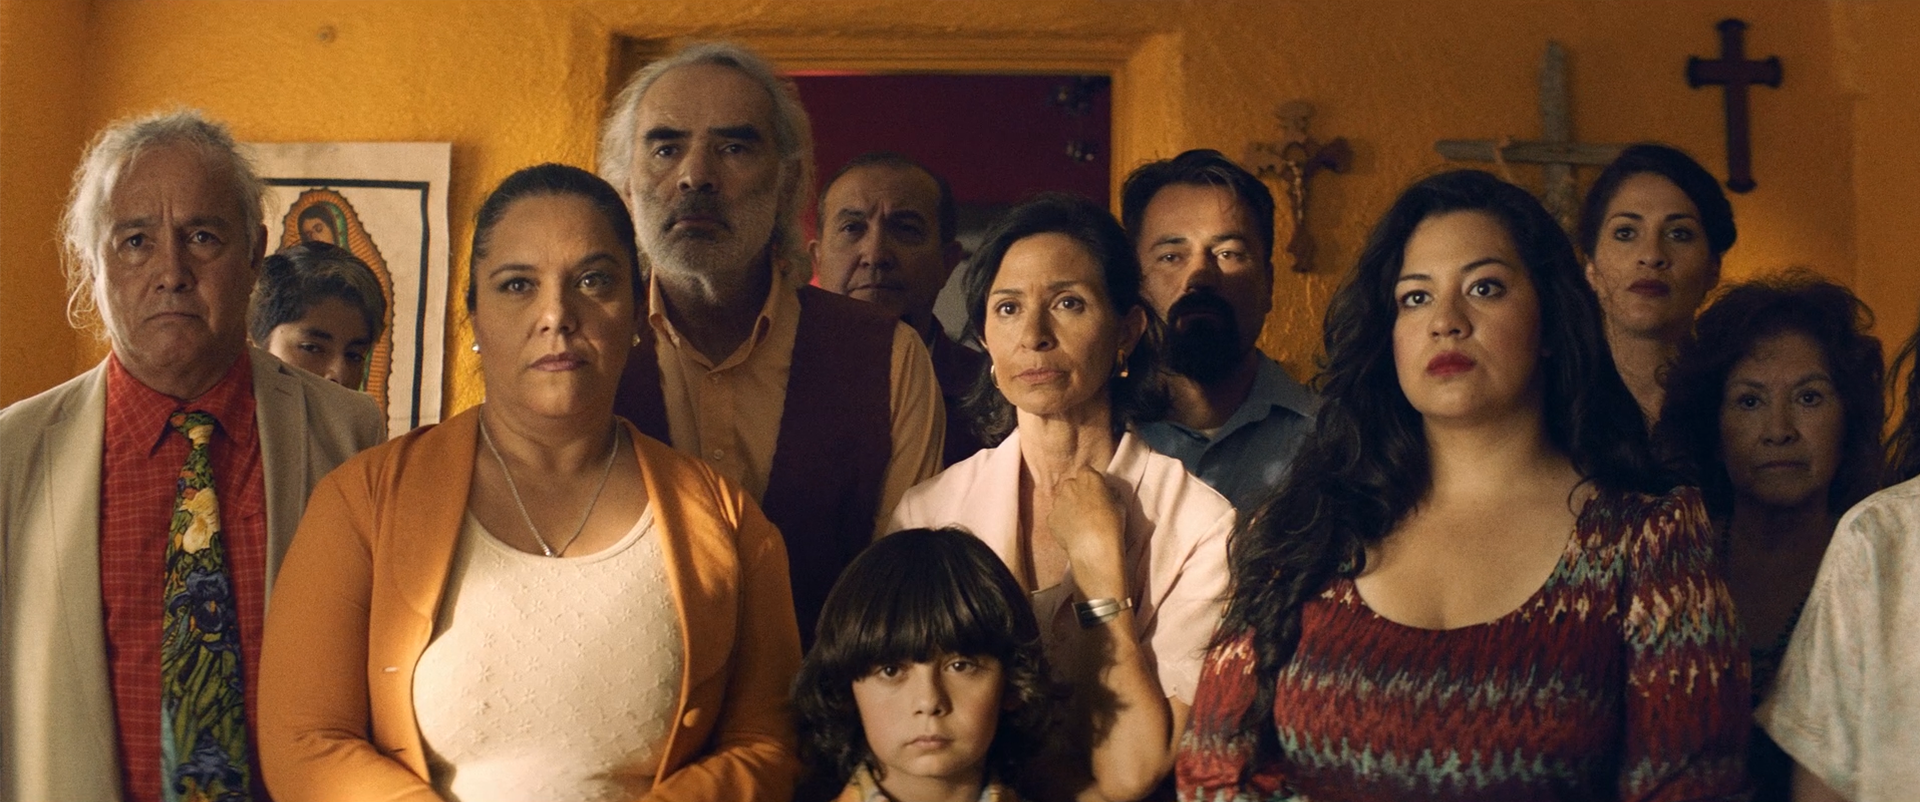 Still from Pozole; Written & Directed by Jessica Mendez Siqueiros